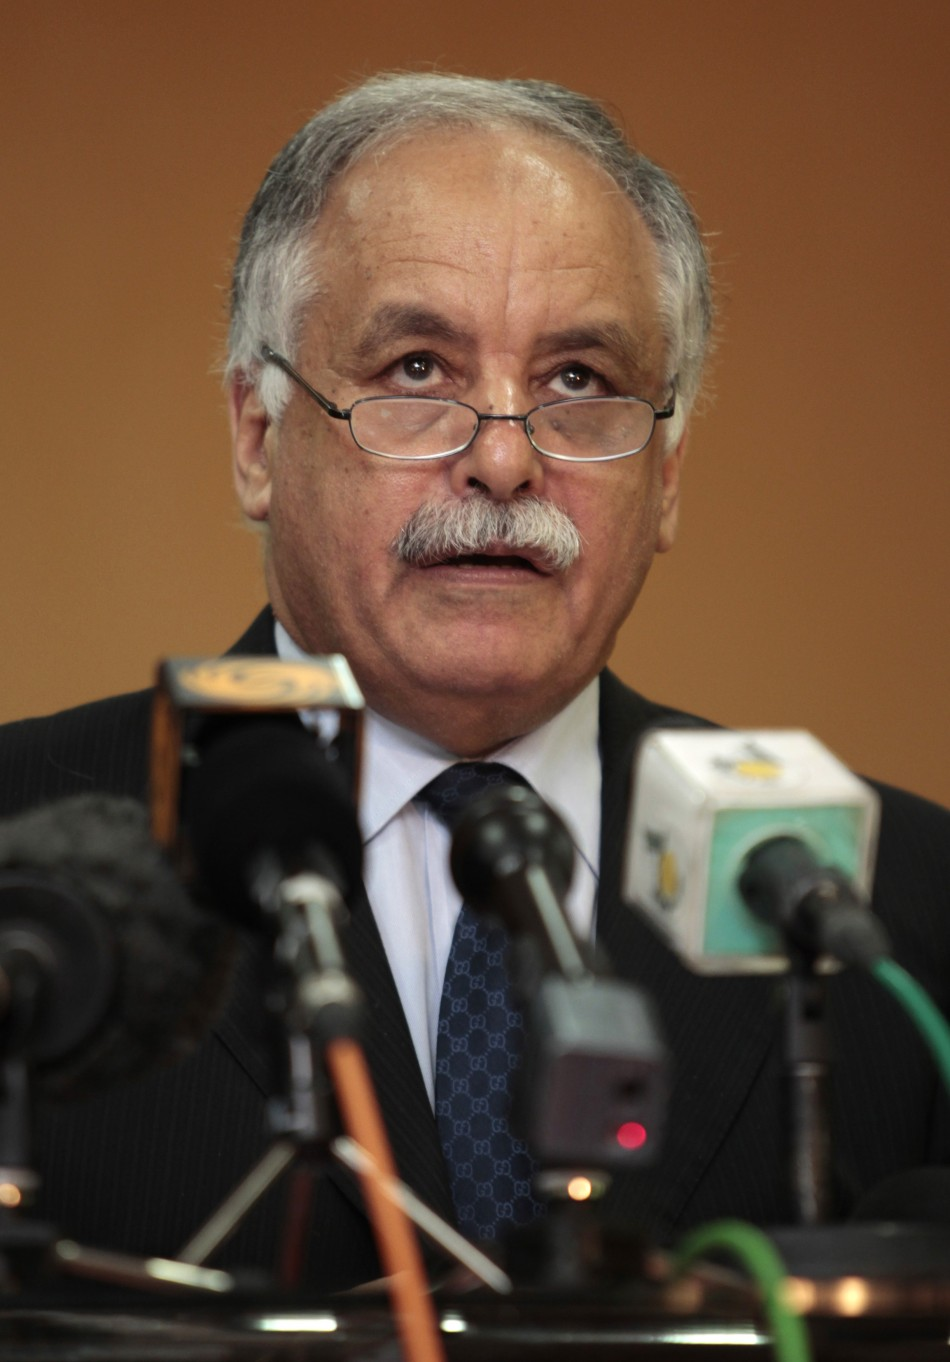 Libyan Prime Minister al-Baghdadi Ali al-Mahmudi talks during his news conference after his meeting with Russia's special representative for Africa, Mikhail Margelov, in Tripoli